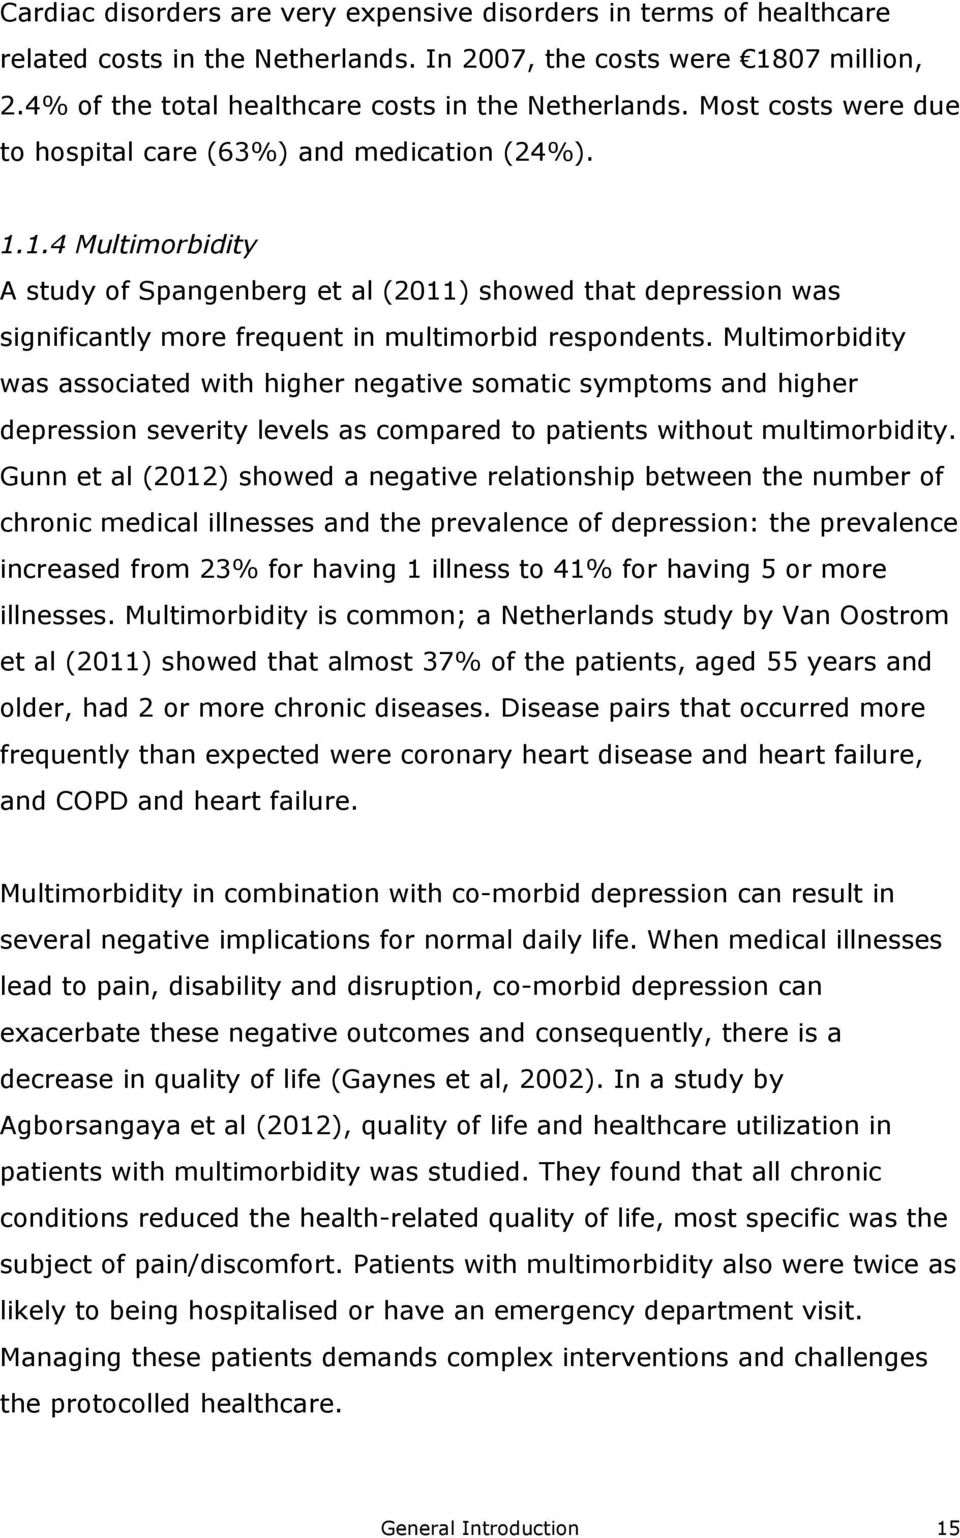 1.4 Multimorbidity A study of Spangenberg et al (2011) showed that depression was significantly more frequent in multimorbid respondents.